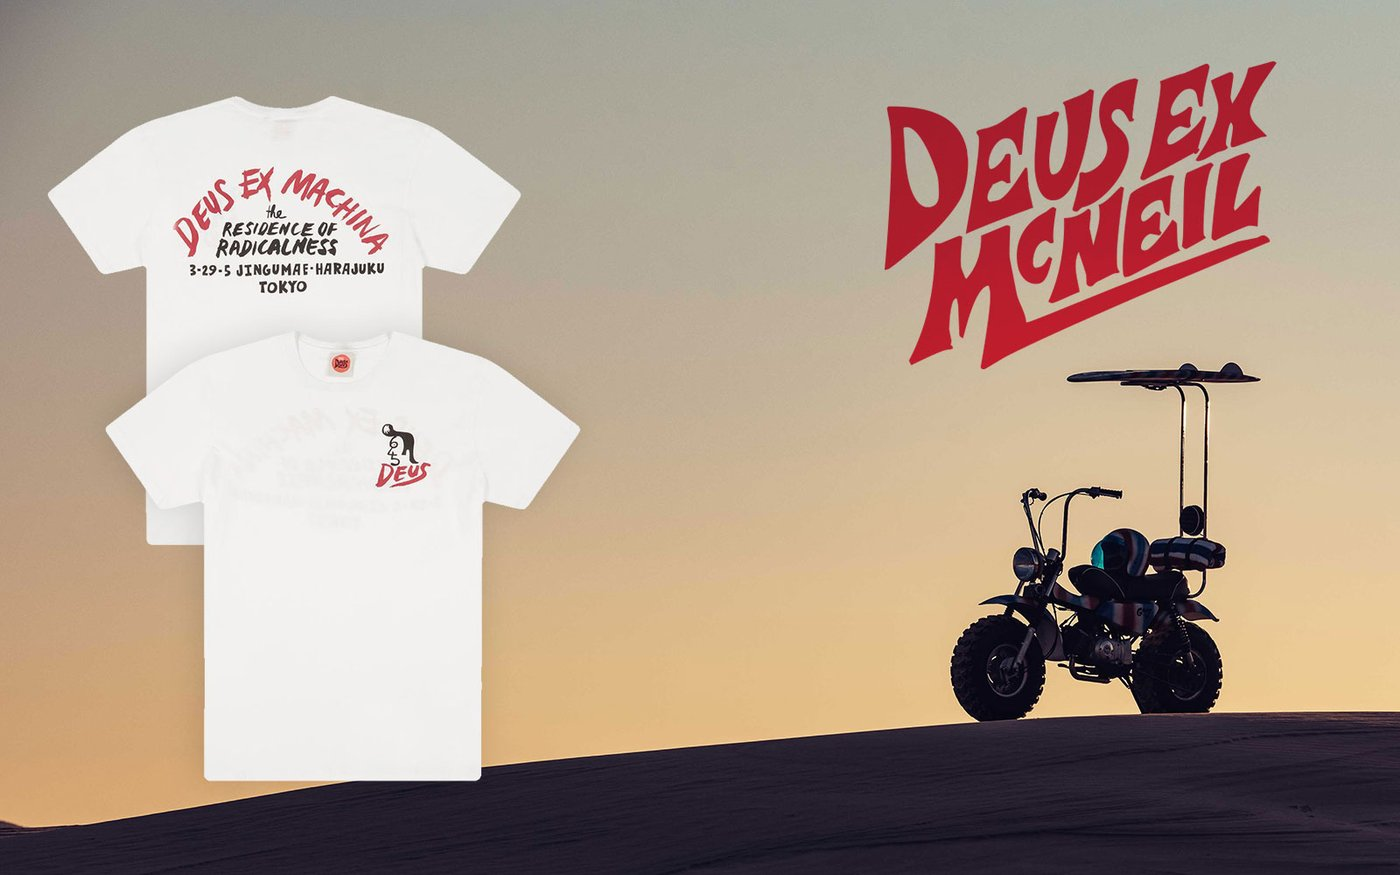 Available Now: Deus Ex Machina x Paul McNeil Collaborate on Surf-Inspired Tees